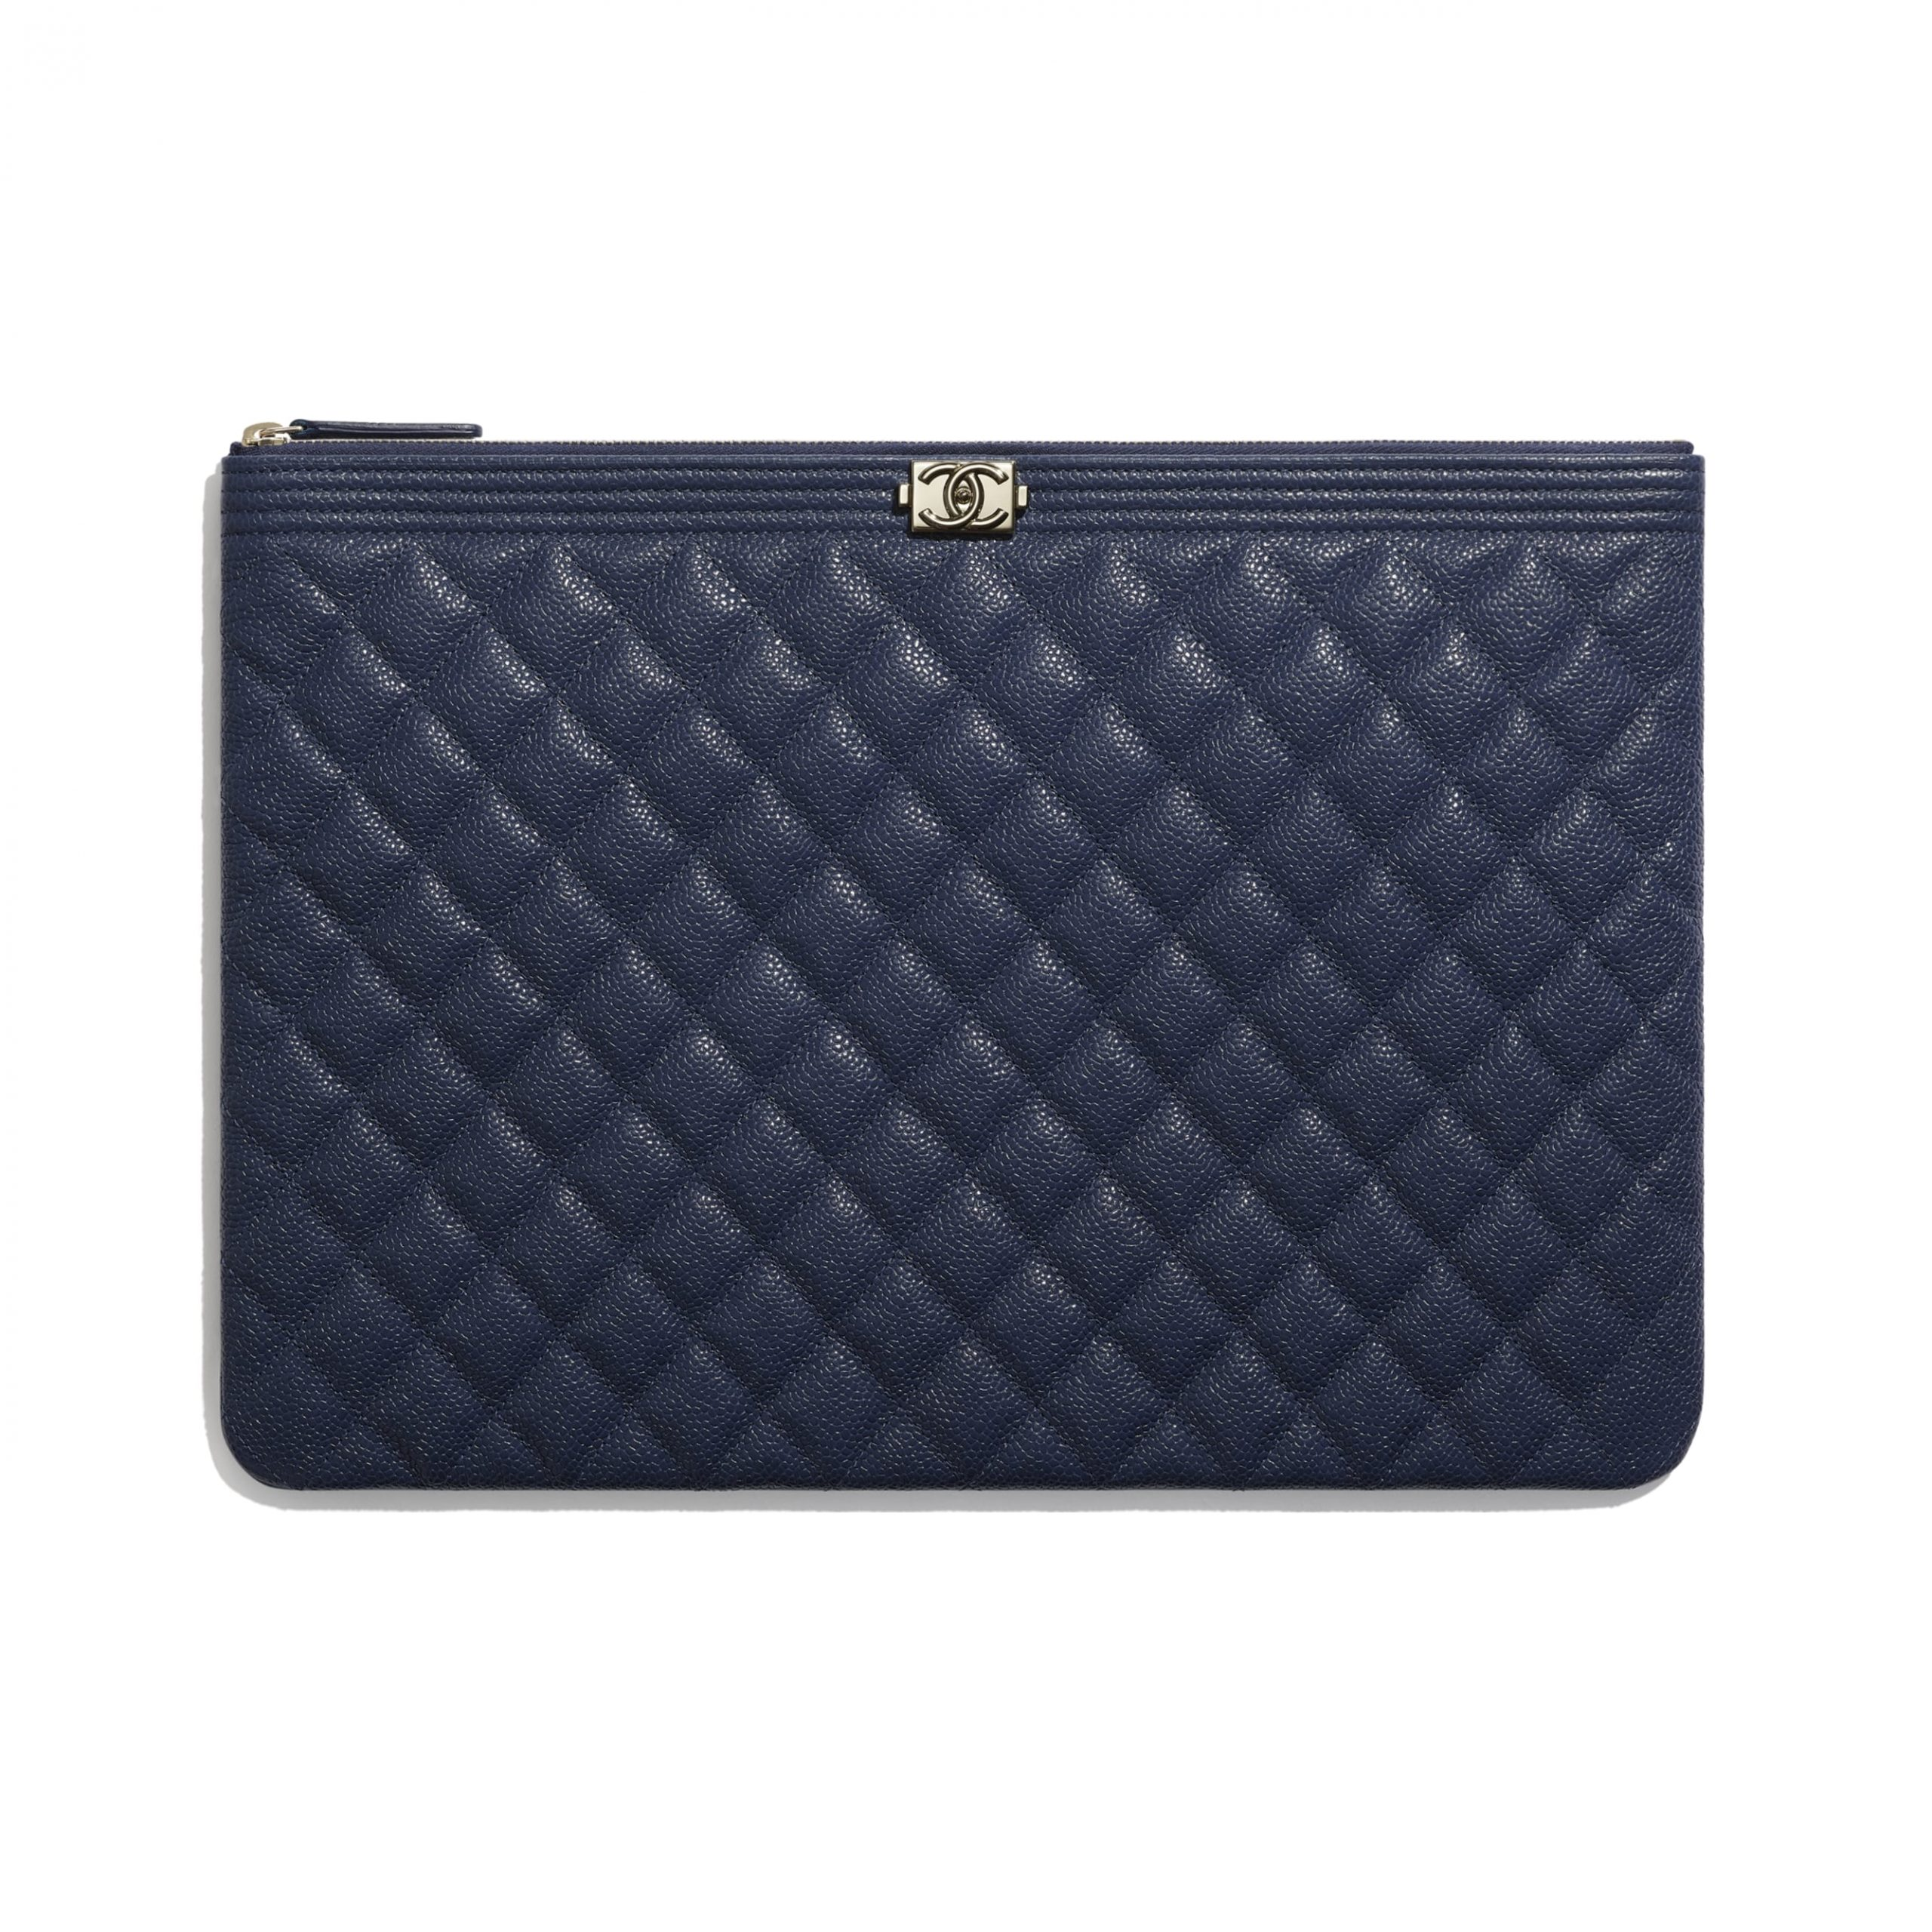 boy-chanel-large-pouch-navy-blue-grained-shiny-calfskin-gold-tone-metal-grained-shiny-calfskin-gold-tone-metal-packshot-default-a84407b02275n5953-8823069474846.jpg